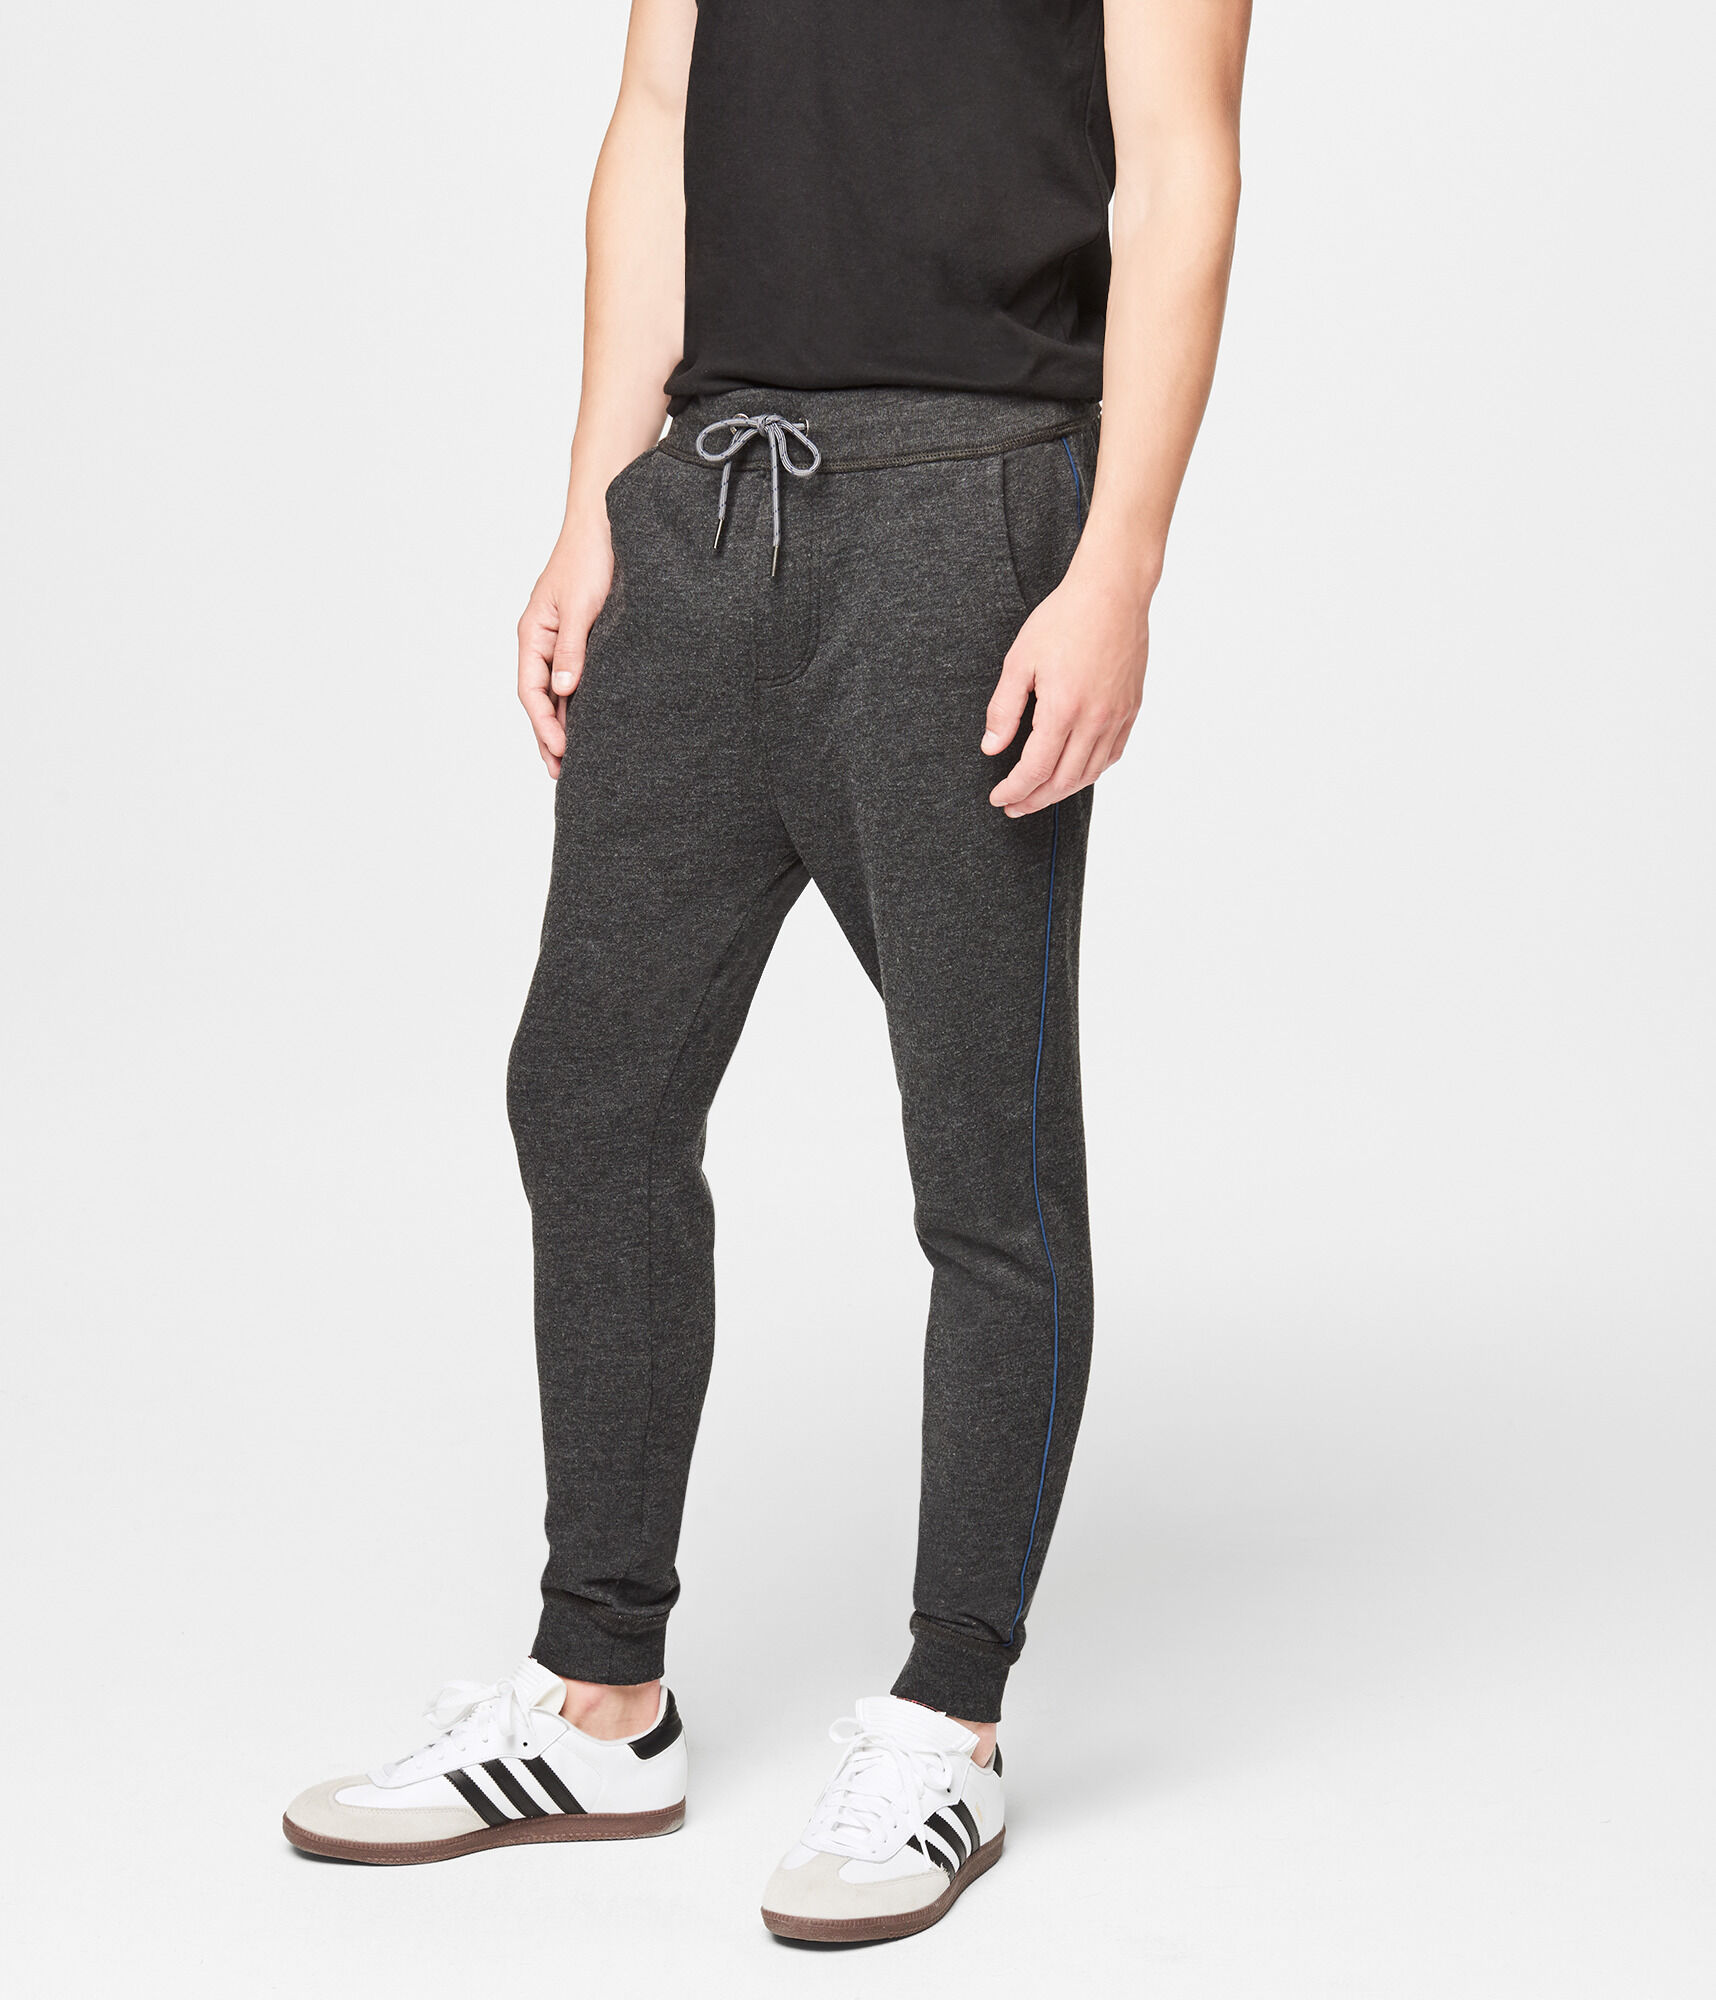 Boyfriend Aeropostale sweatpants pictures